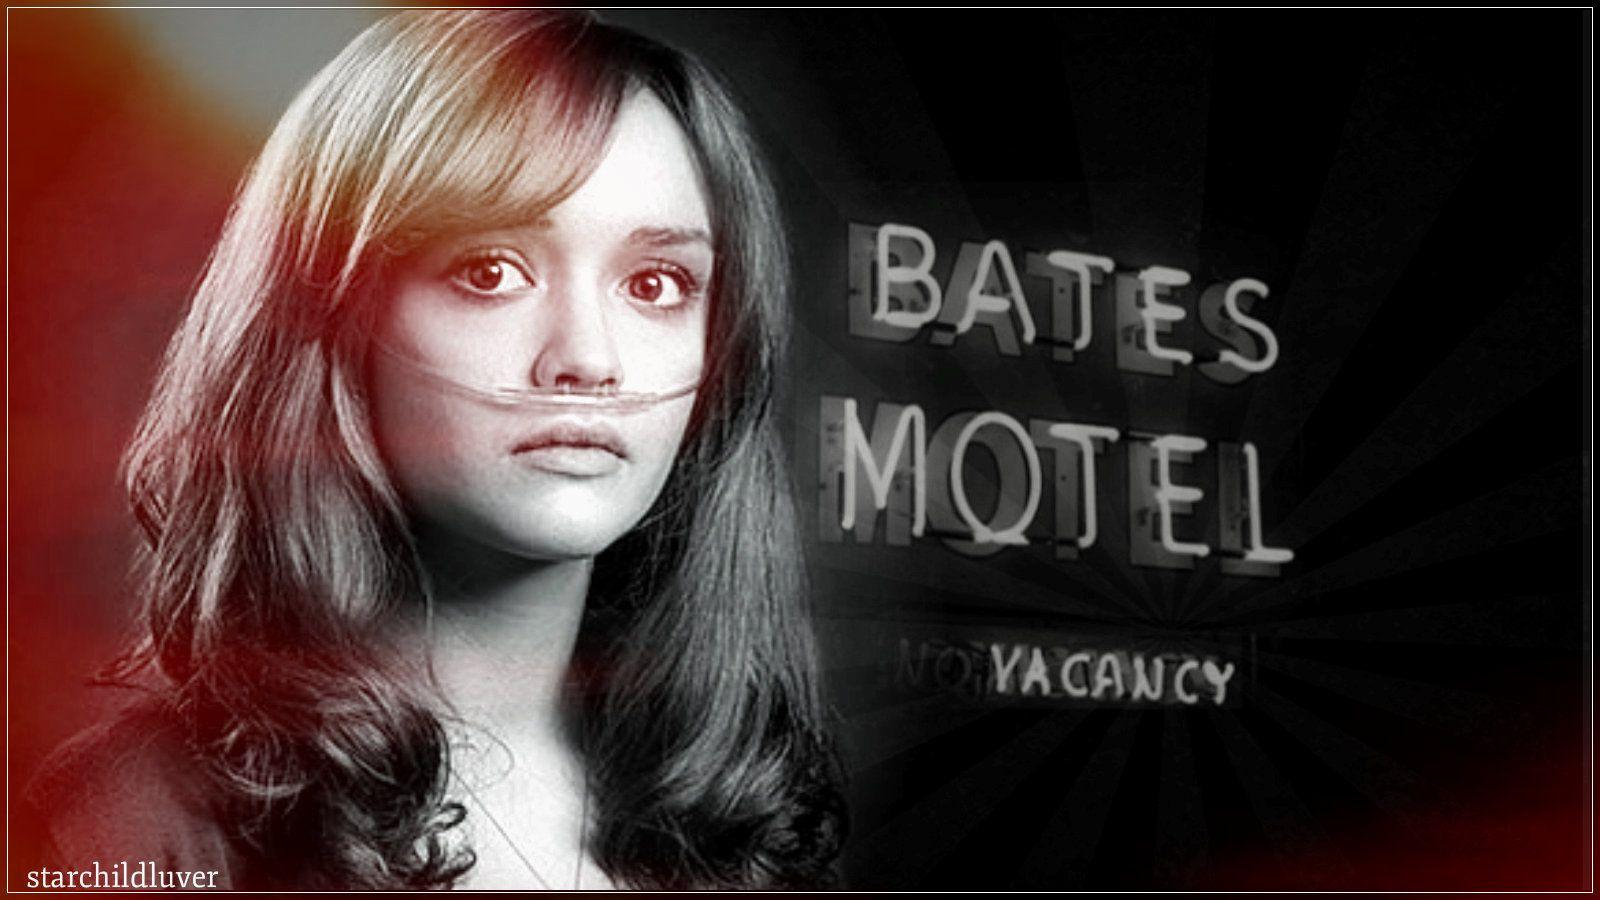 Bates Motel s2 Bates Motel Wallpapers